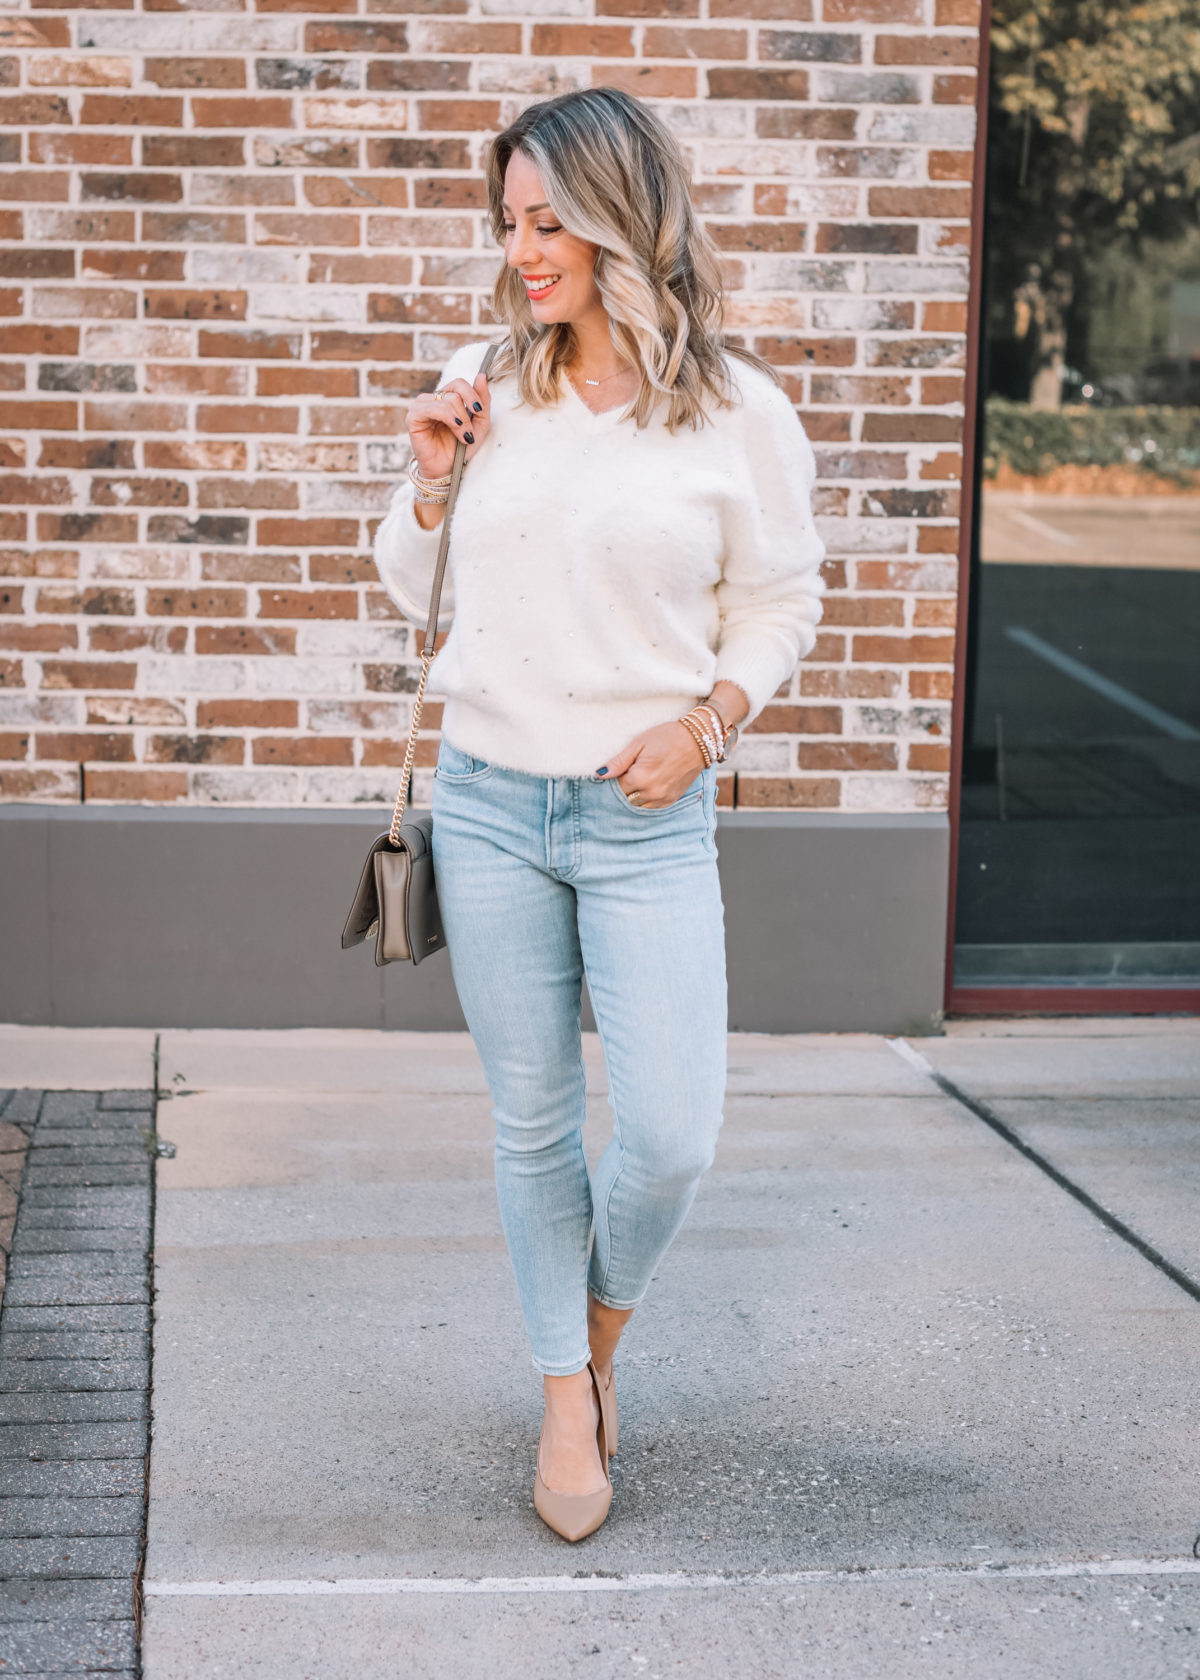 Express Fashion, Jeweld Sweater, Skinny Jeans, Nude Heels